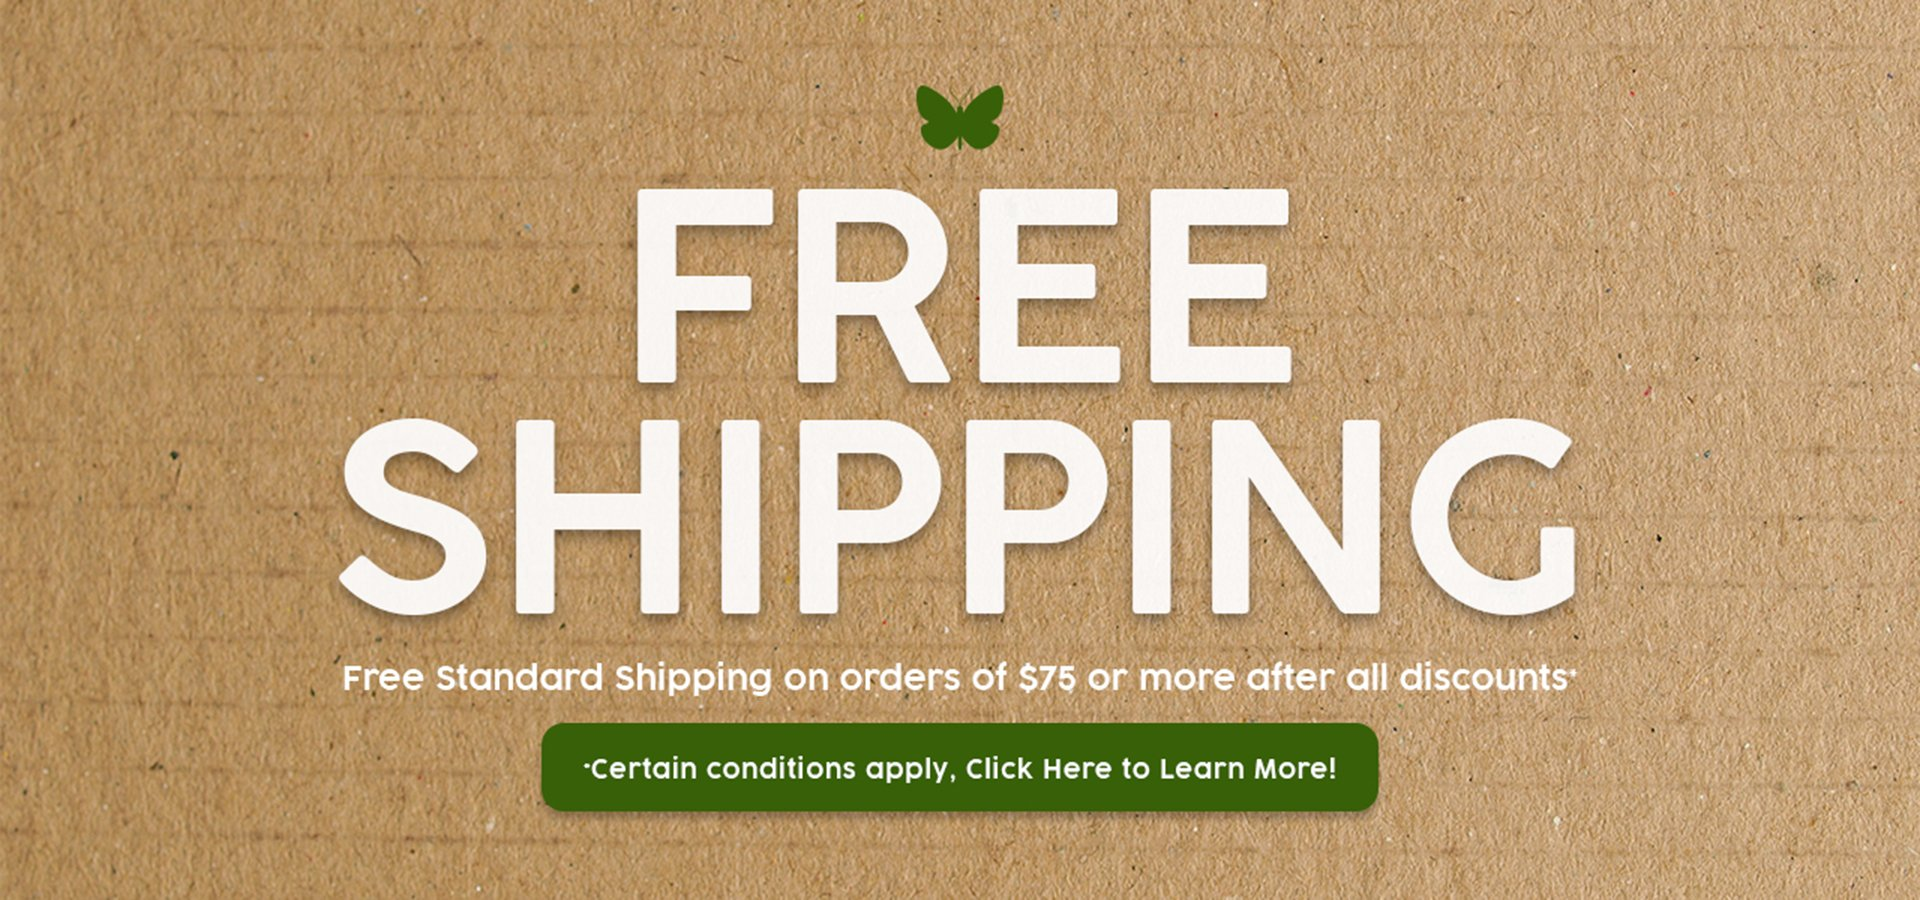 Free Shipping from Shop Natural Awakenings on orders of $75 or more